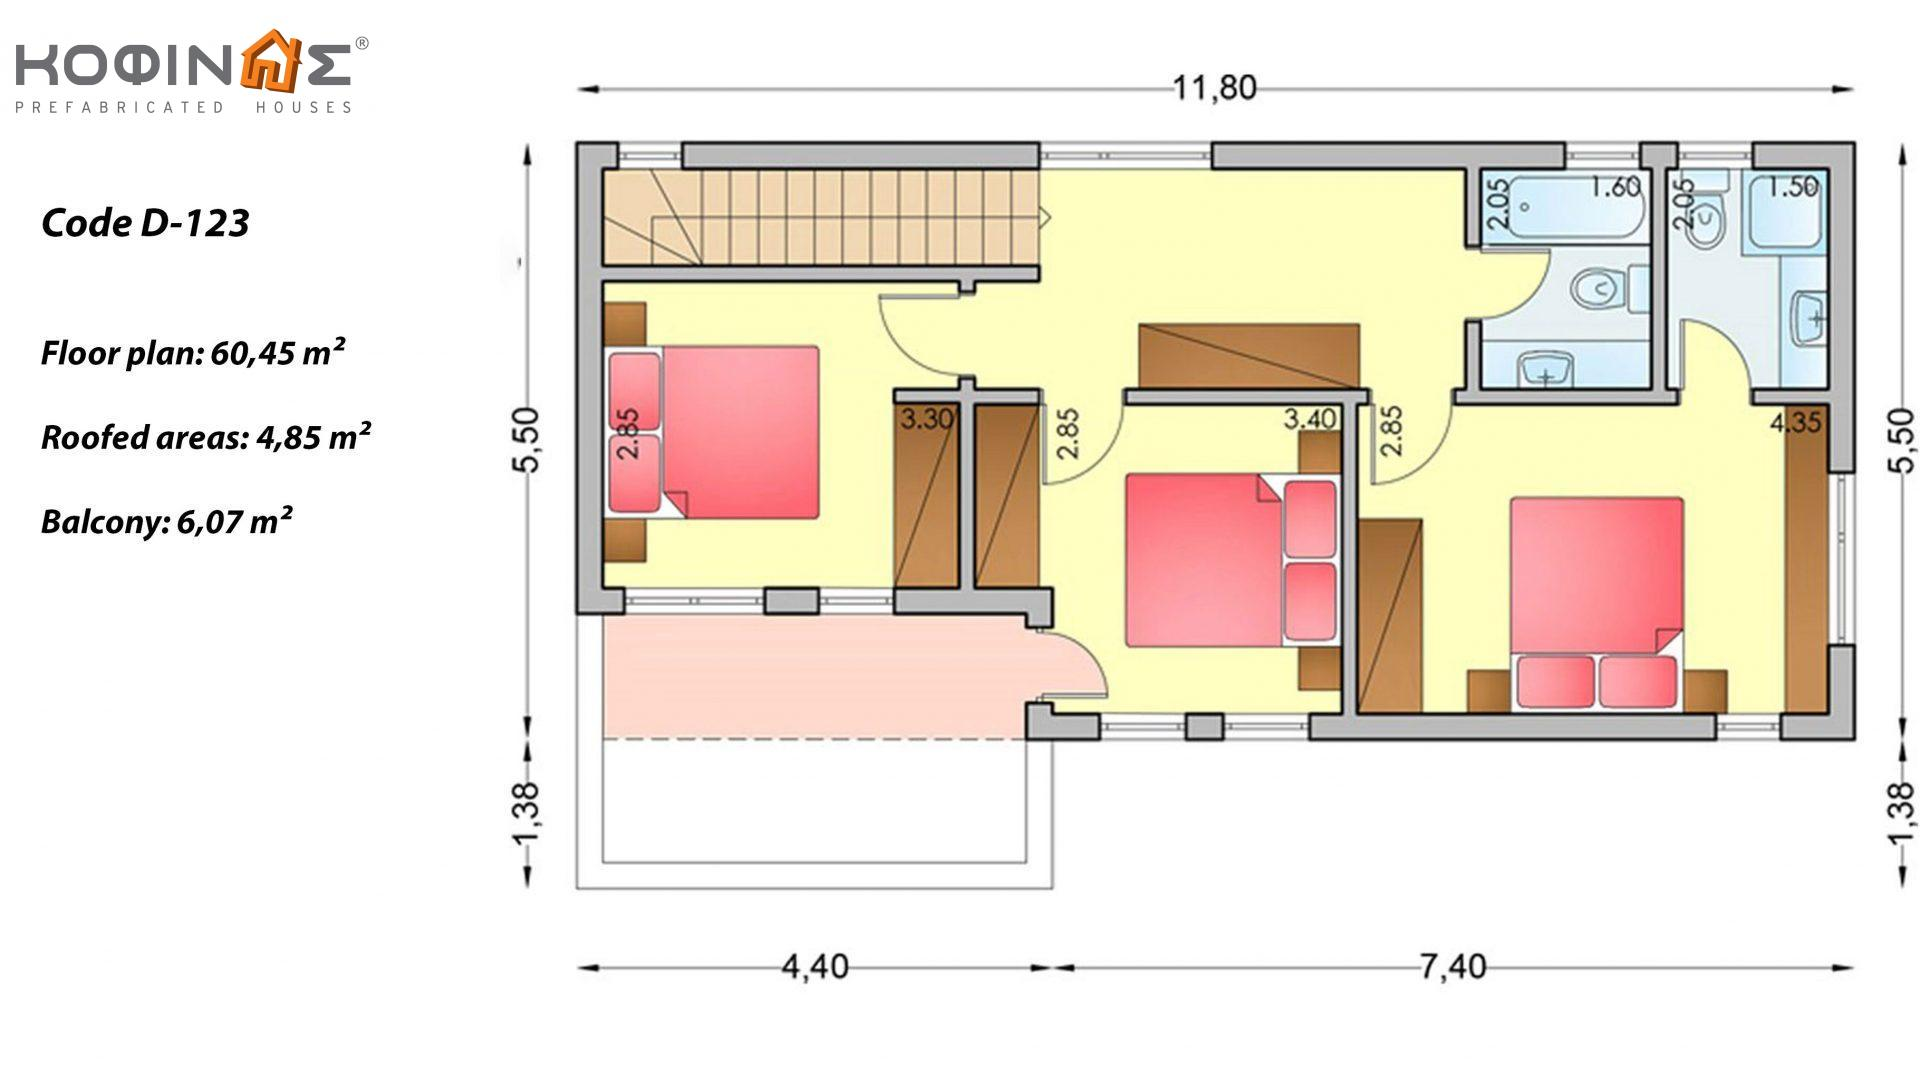 2-story house D-123, total surface of 123,30 m² ,roofed areas 11,42 m²,balconies 6,07 m²